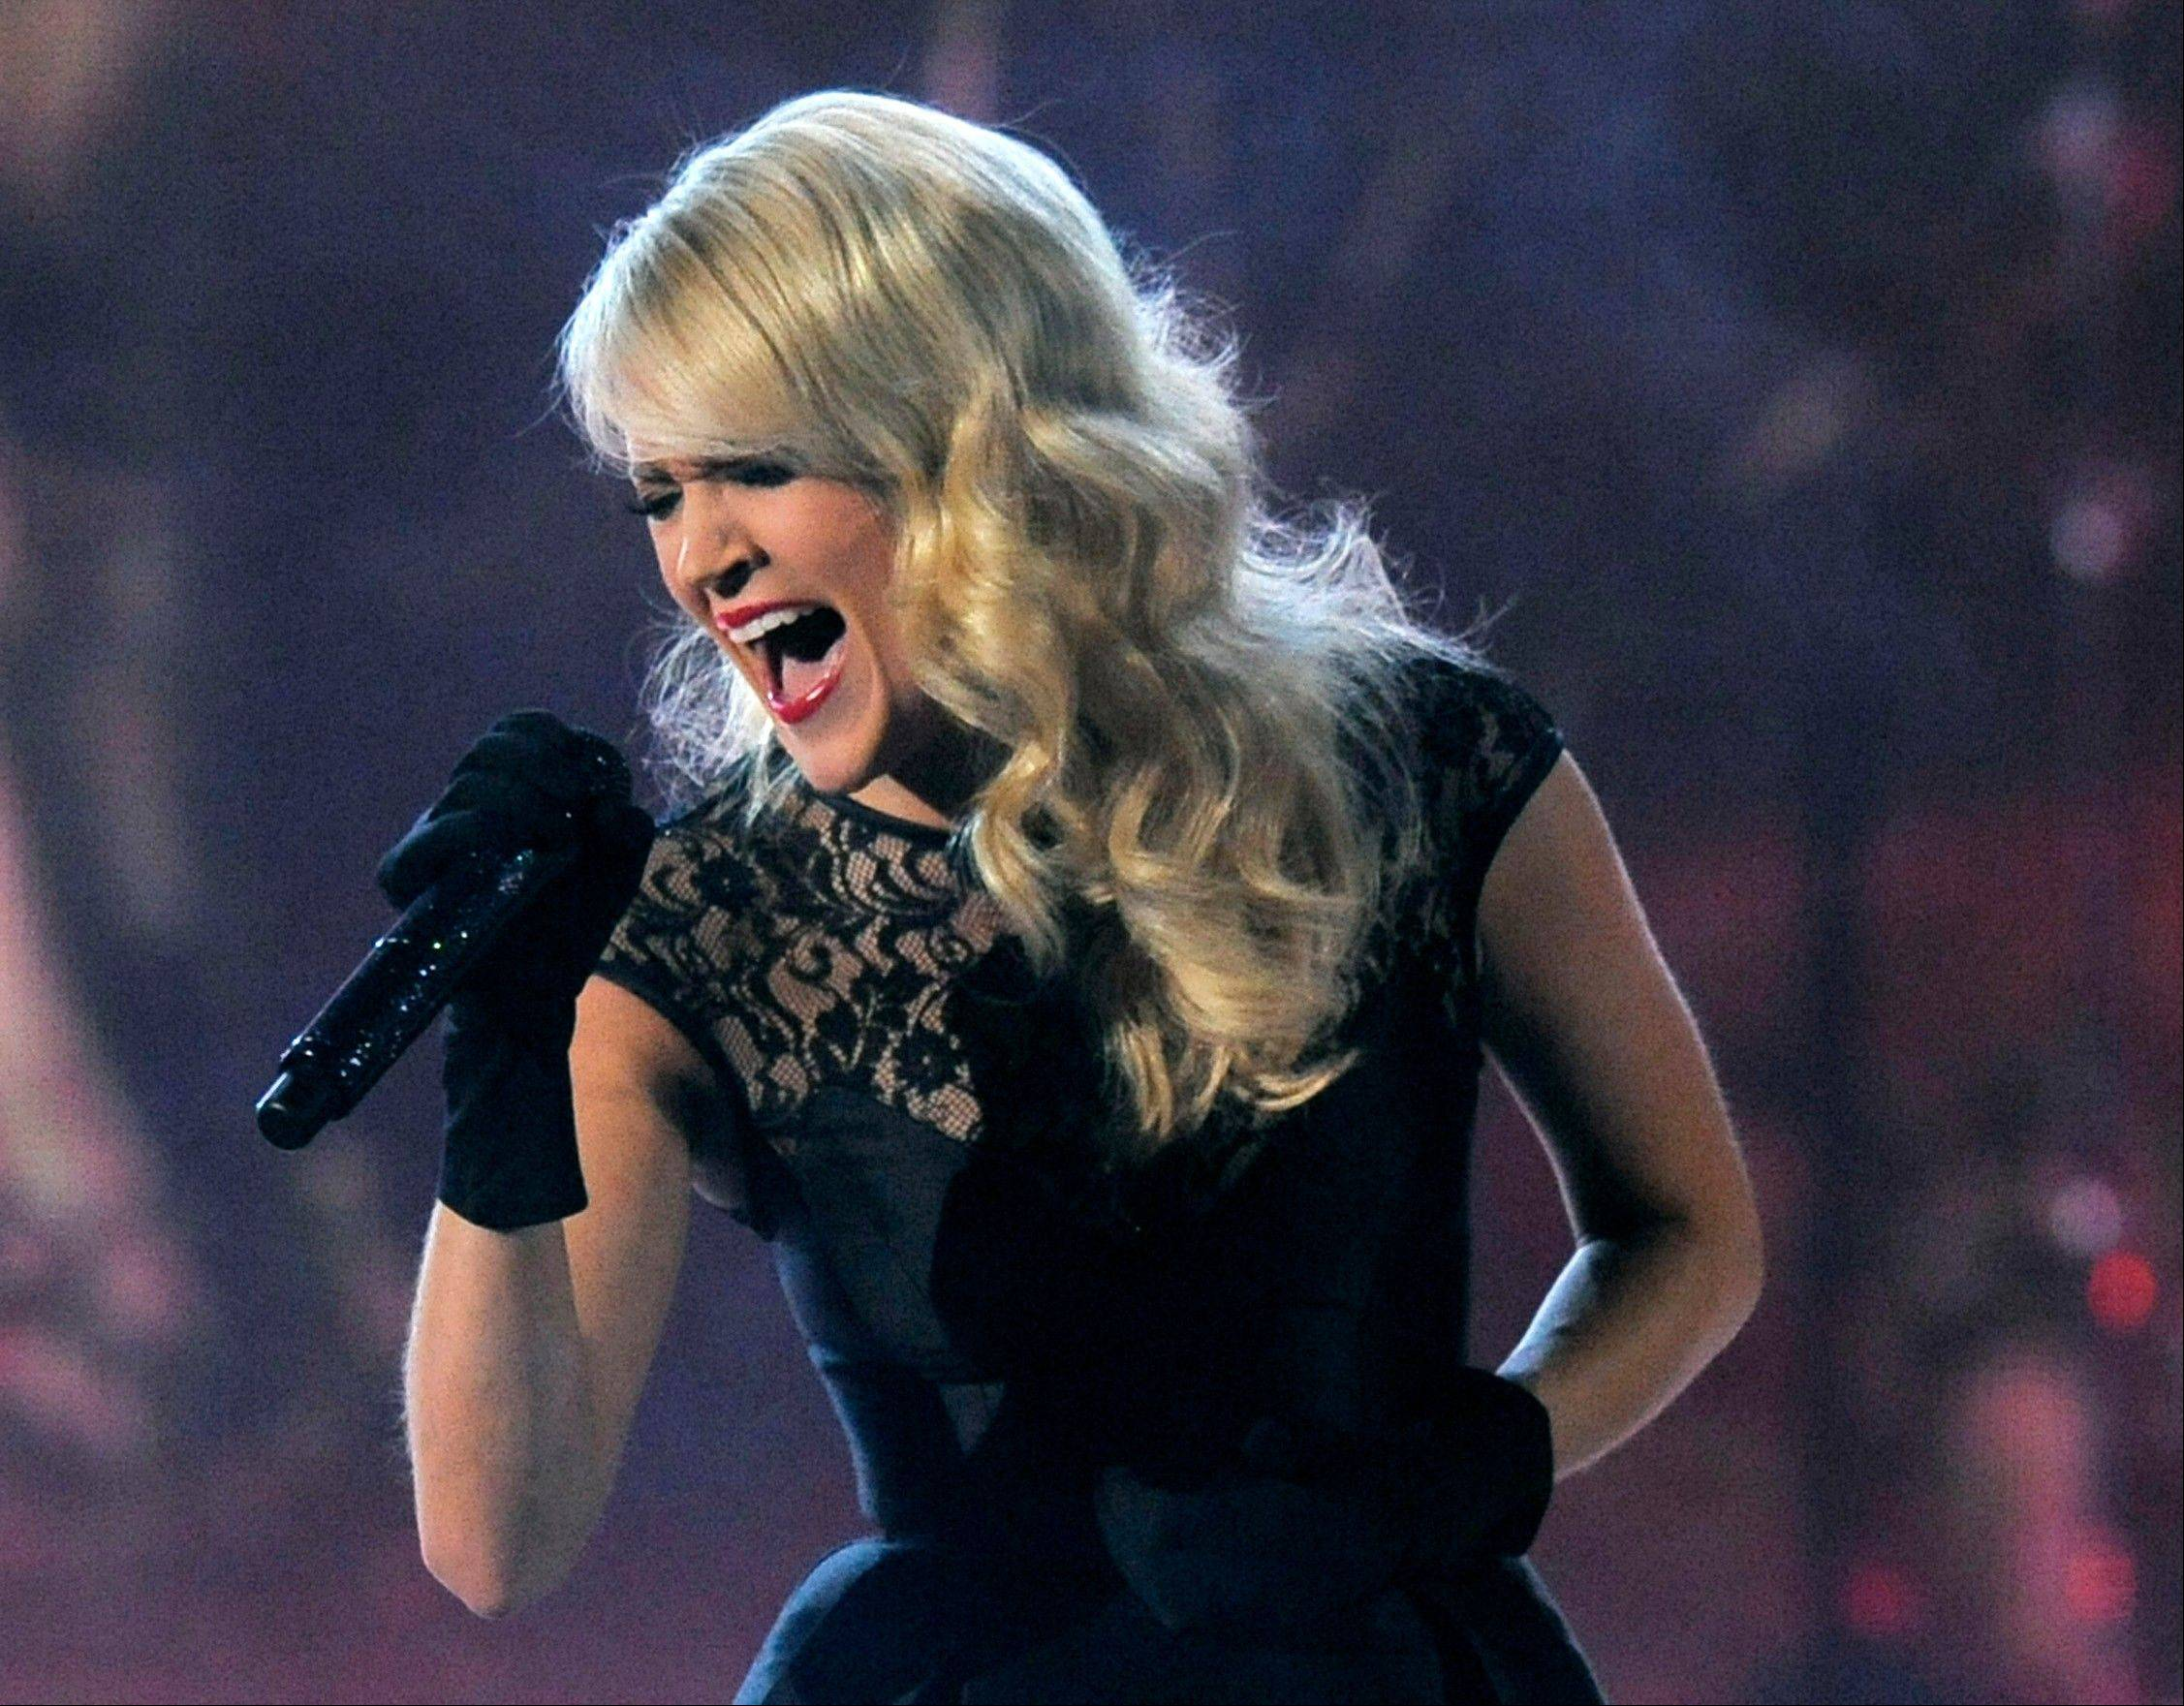 Carrie Underwood will pay tribute to the victims of the recent deadly tornadoes in Oklahoma in her appearance on the CMT Music Awards on Wednesday, June 5. Underwood will perform her new single �See You Again,� recasting it as a somber memorial with the aid of two dozen choir members from Nashville�s Christ Church.